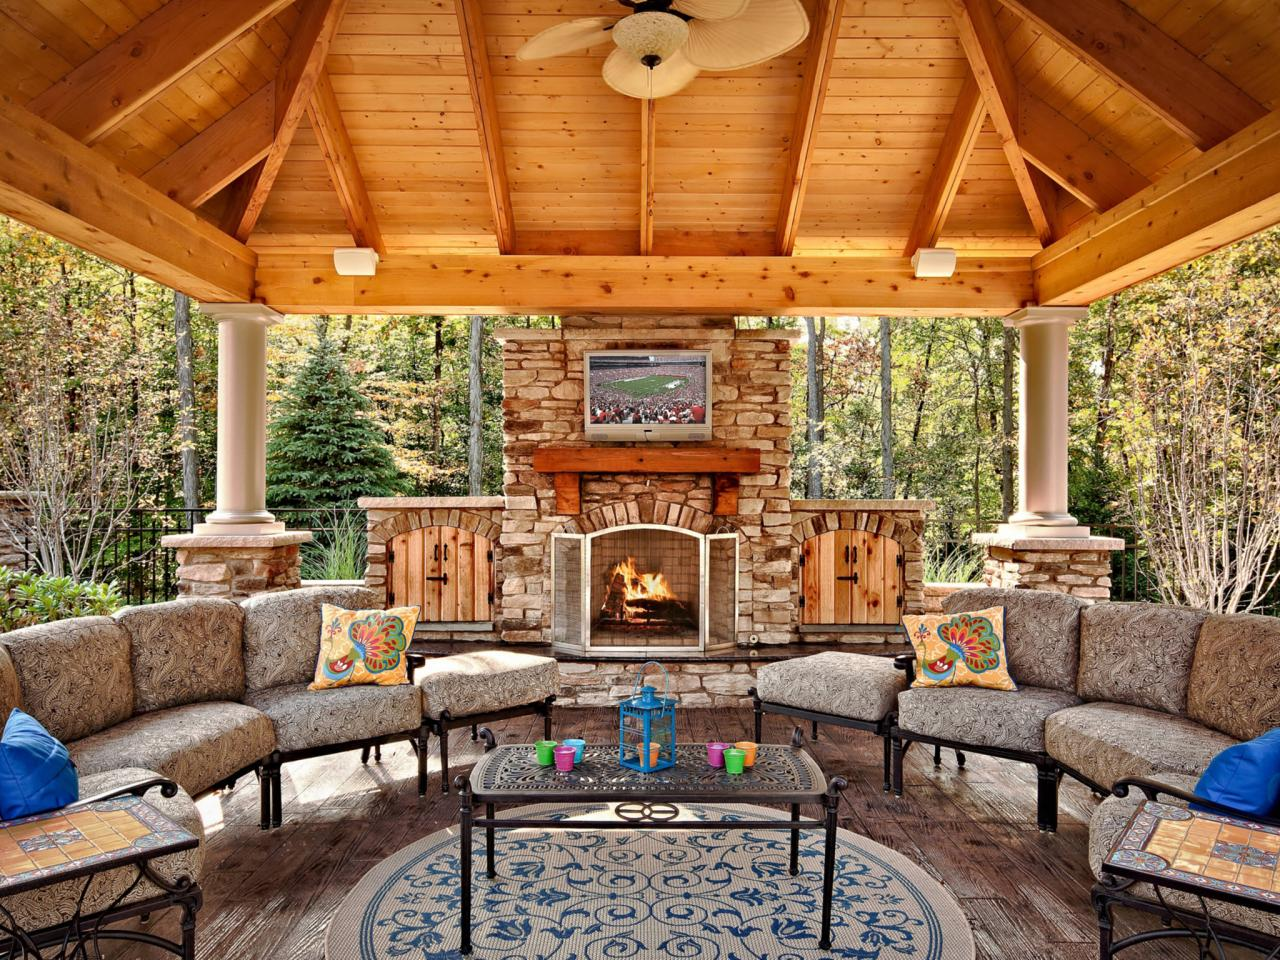 Outdoor fireplace plans hgtv for Outdoor patio fireplace ideas